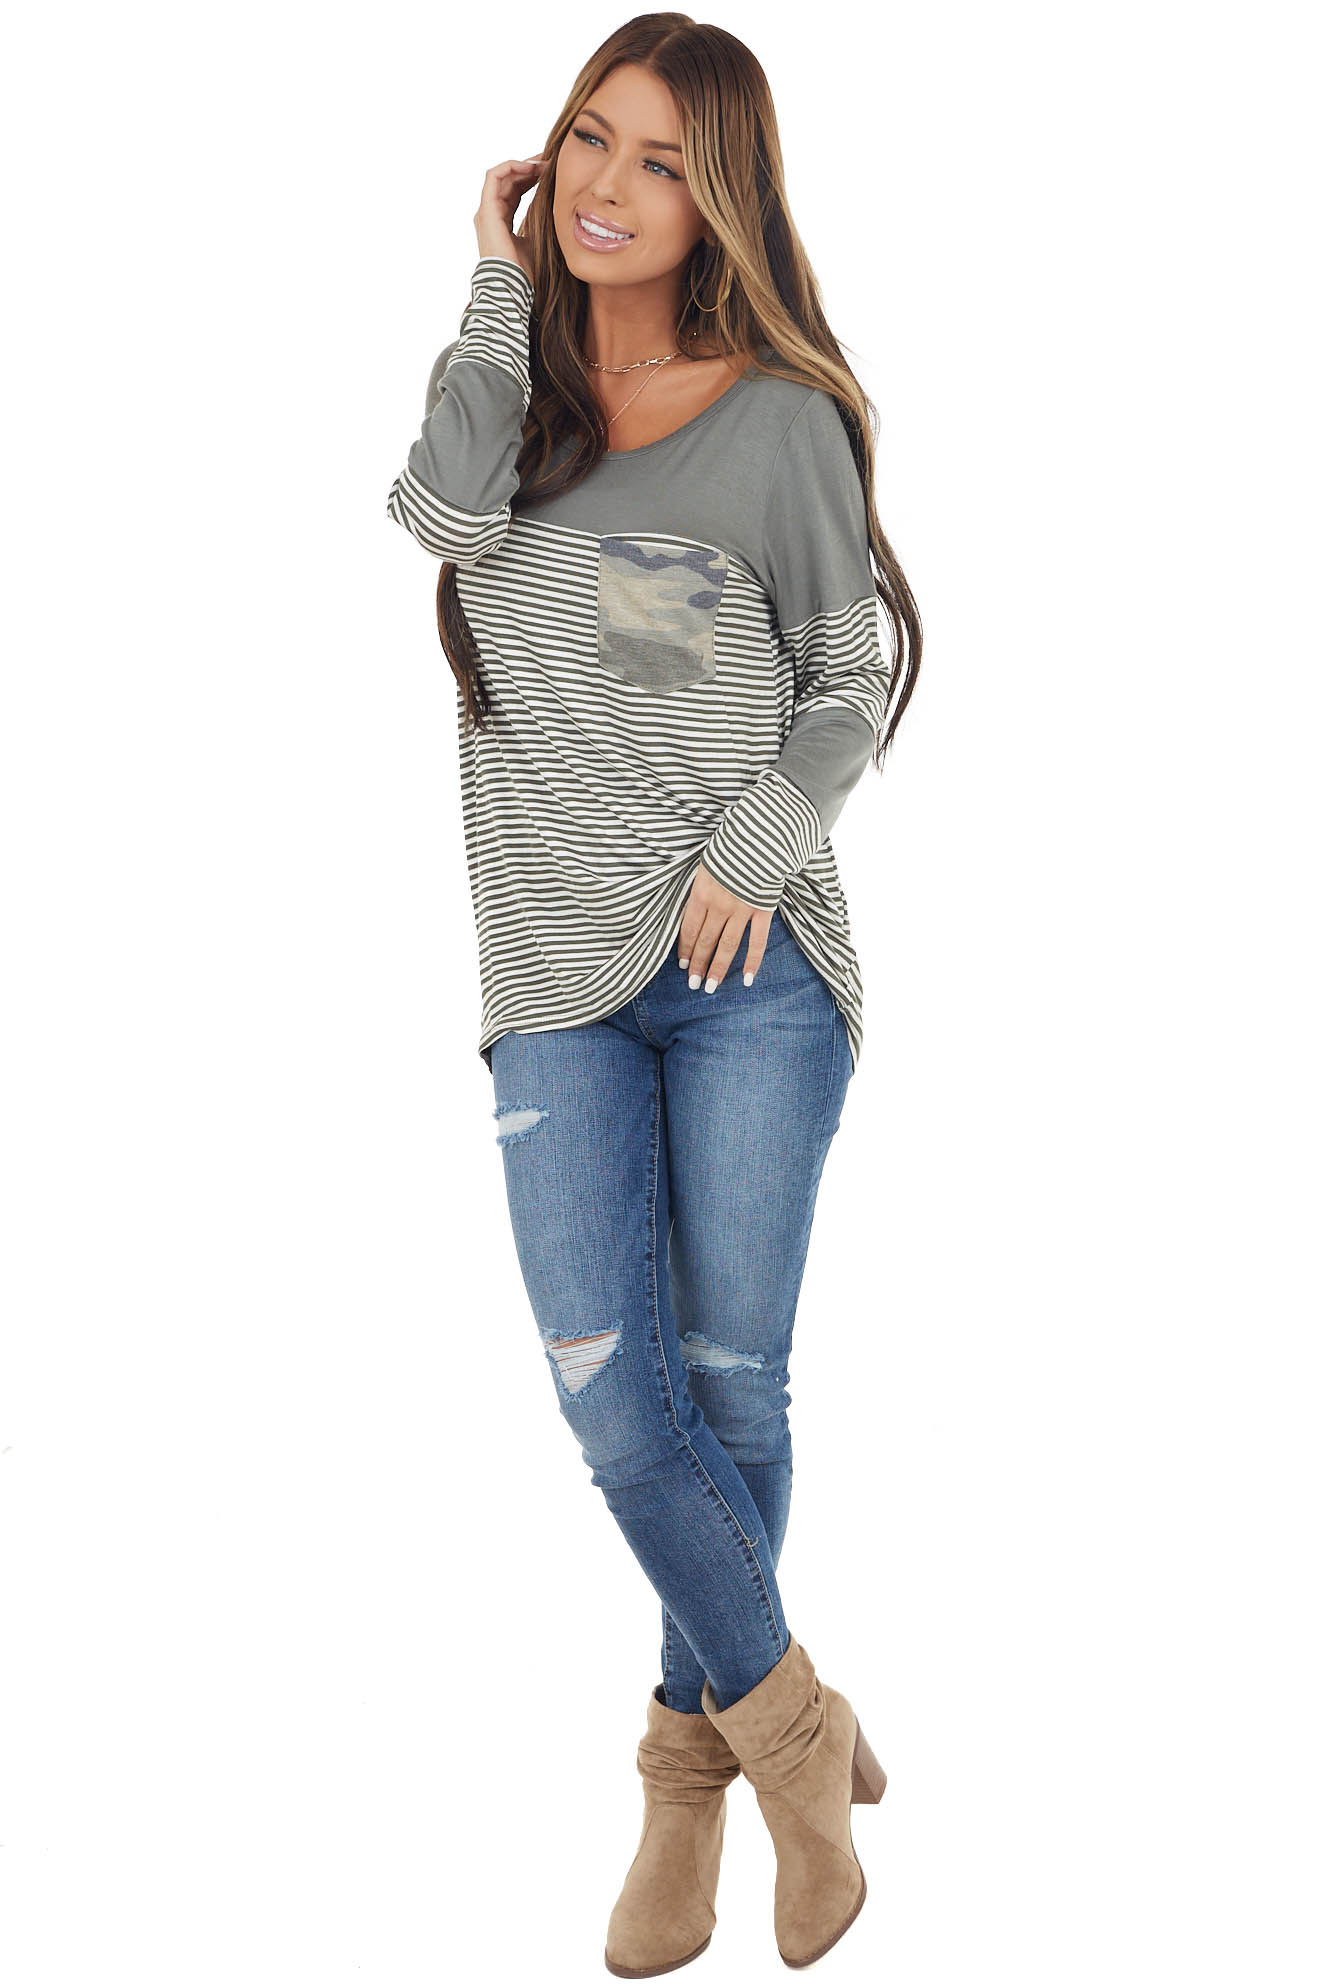 Faded Olive Striped Knit Top with Camo Chest Pocket